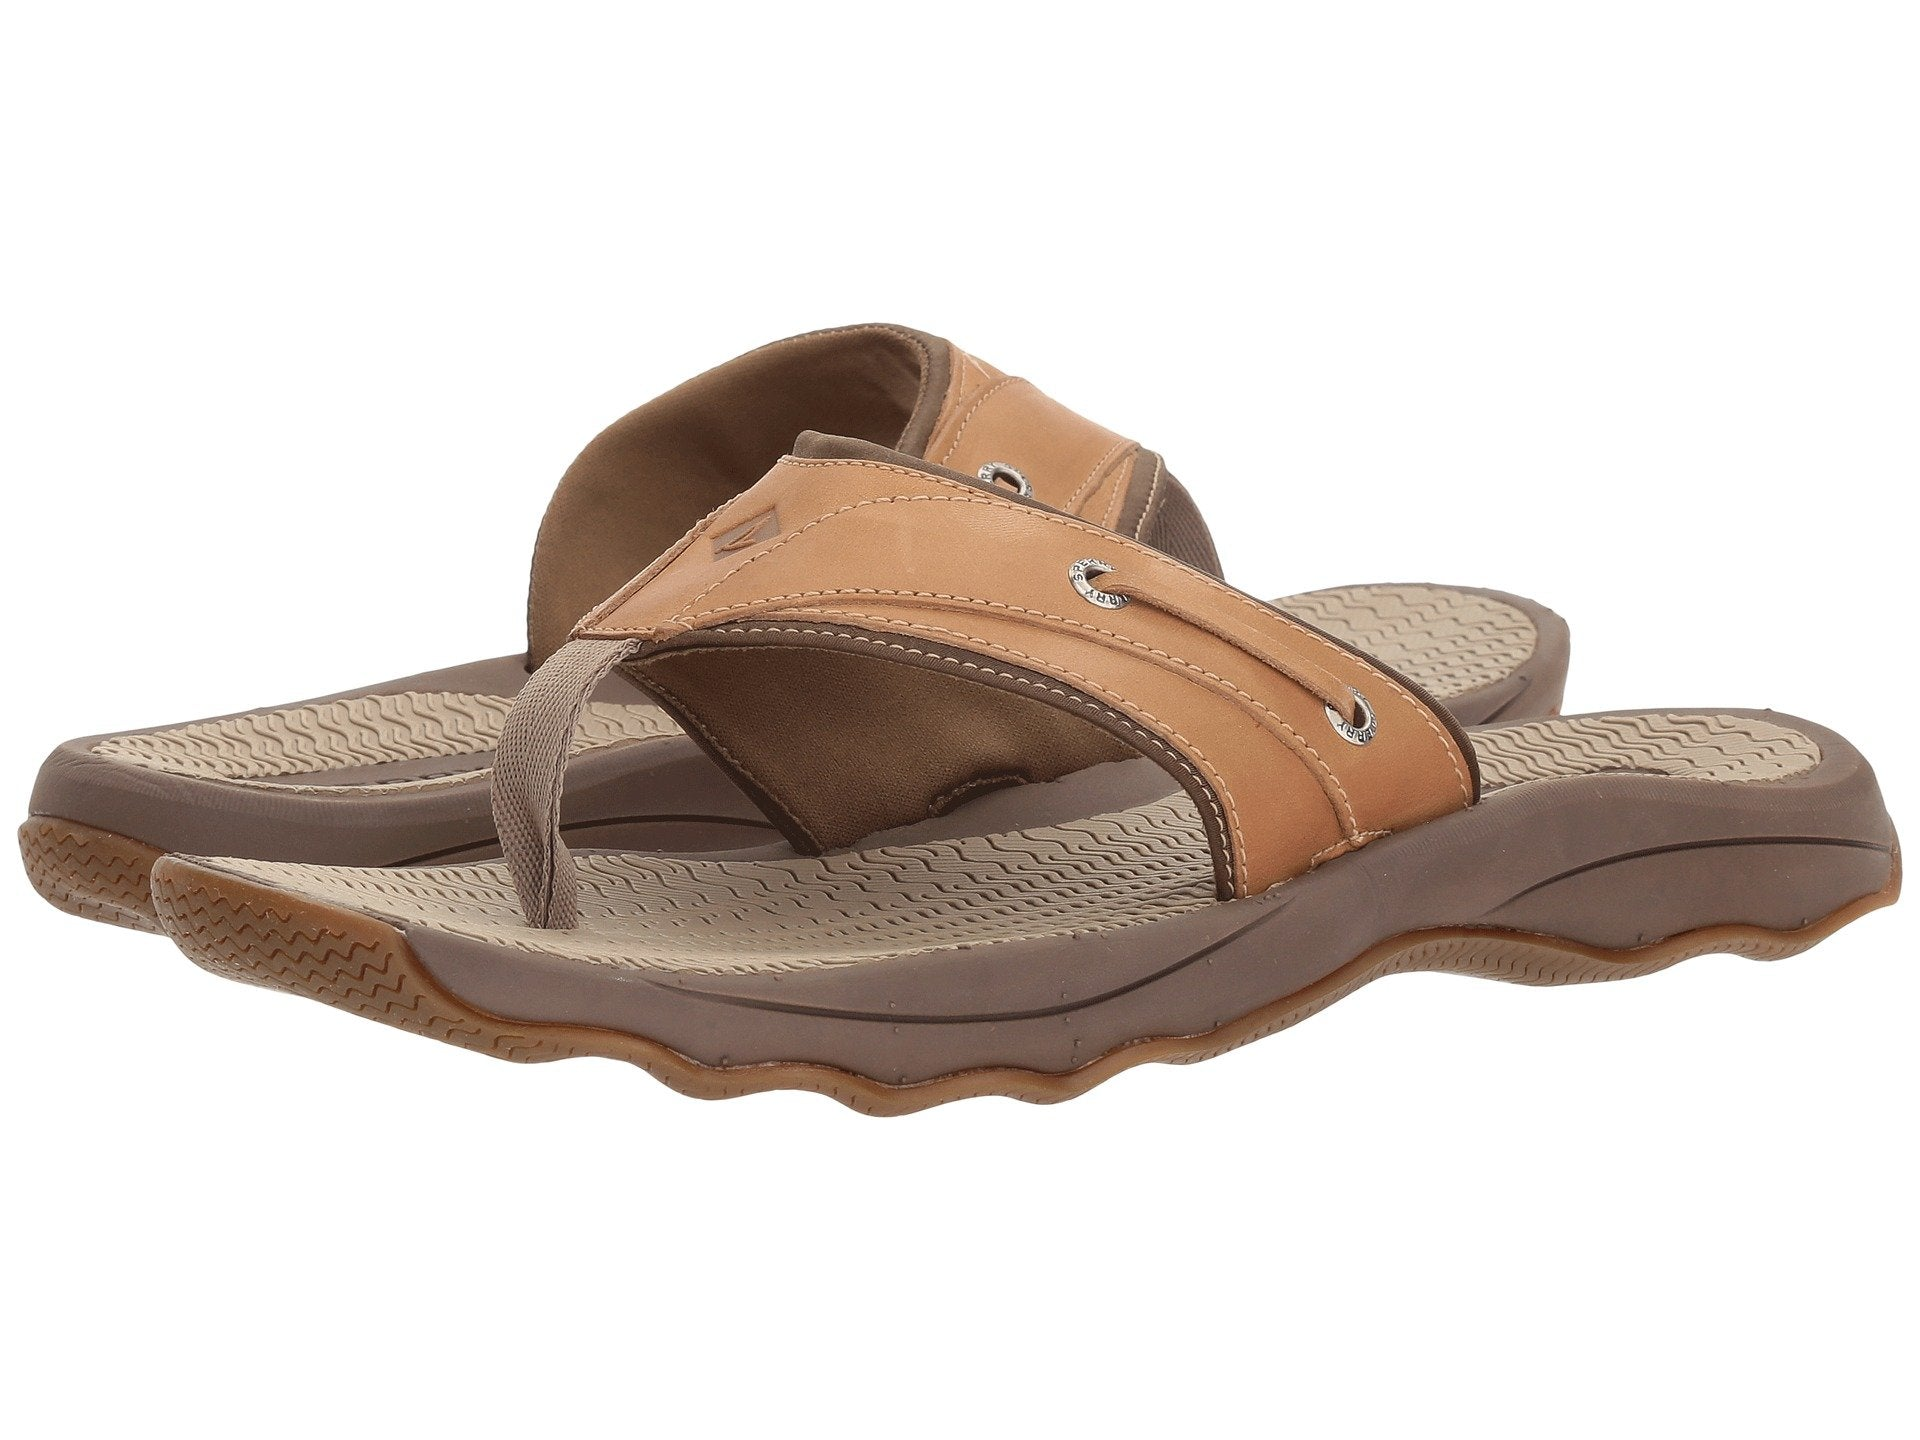 48ef4c5dbf1 Sperry Outer Banks Thong Sandal – Yashry